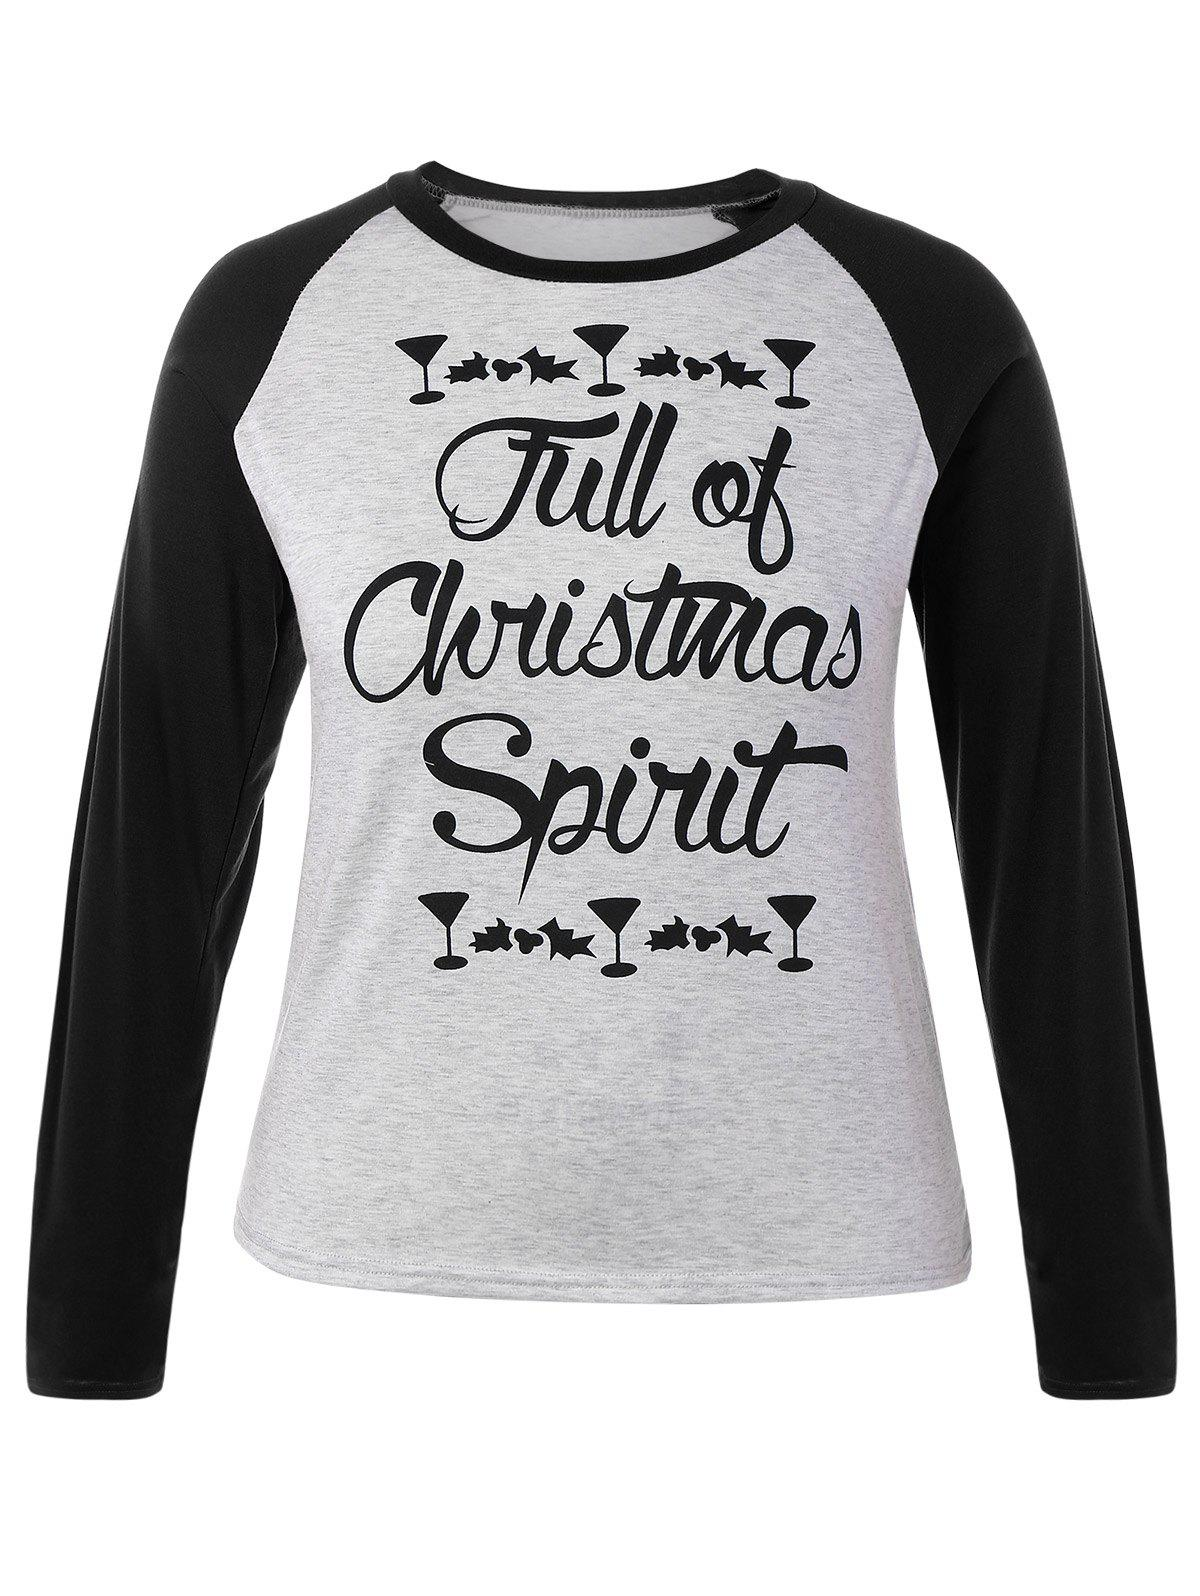 Plus Size Raglan Sleeve Christmas T-ShirtWOMEN<br><br>Size: 2XL; Color: BLACK; Material: Cotton Blends,Polyester; Shirt Length: Regular; Sleeve Length: Full; Collar: Crew Neck; Style: Fashion; Season: Fall,Spring,Winter; Pattern Type: Letter; Weight: 0.224kg; Package Contents: 1 x T-Shirt;